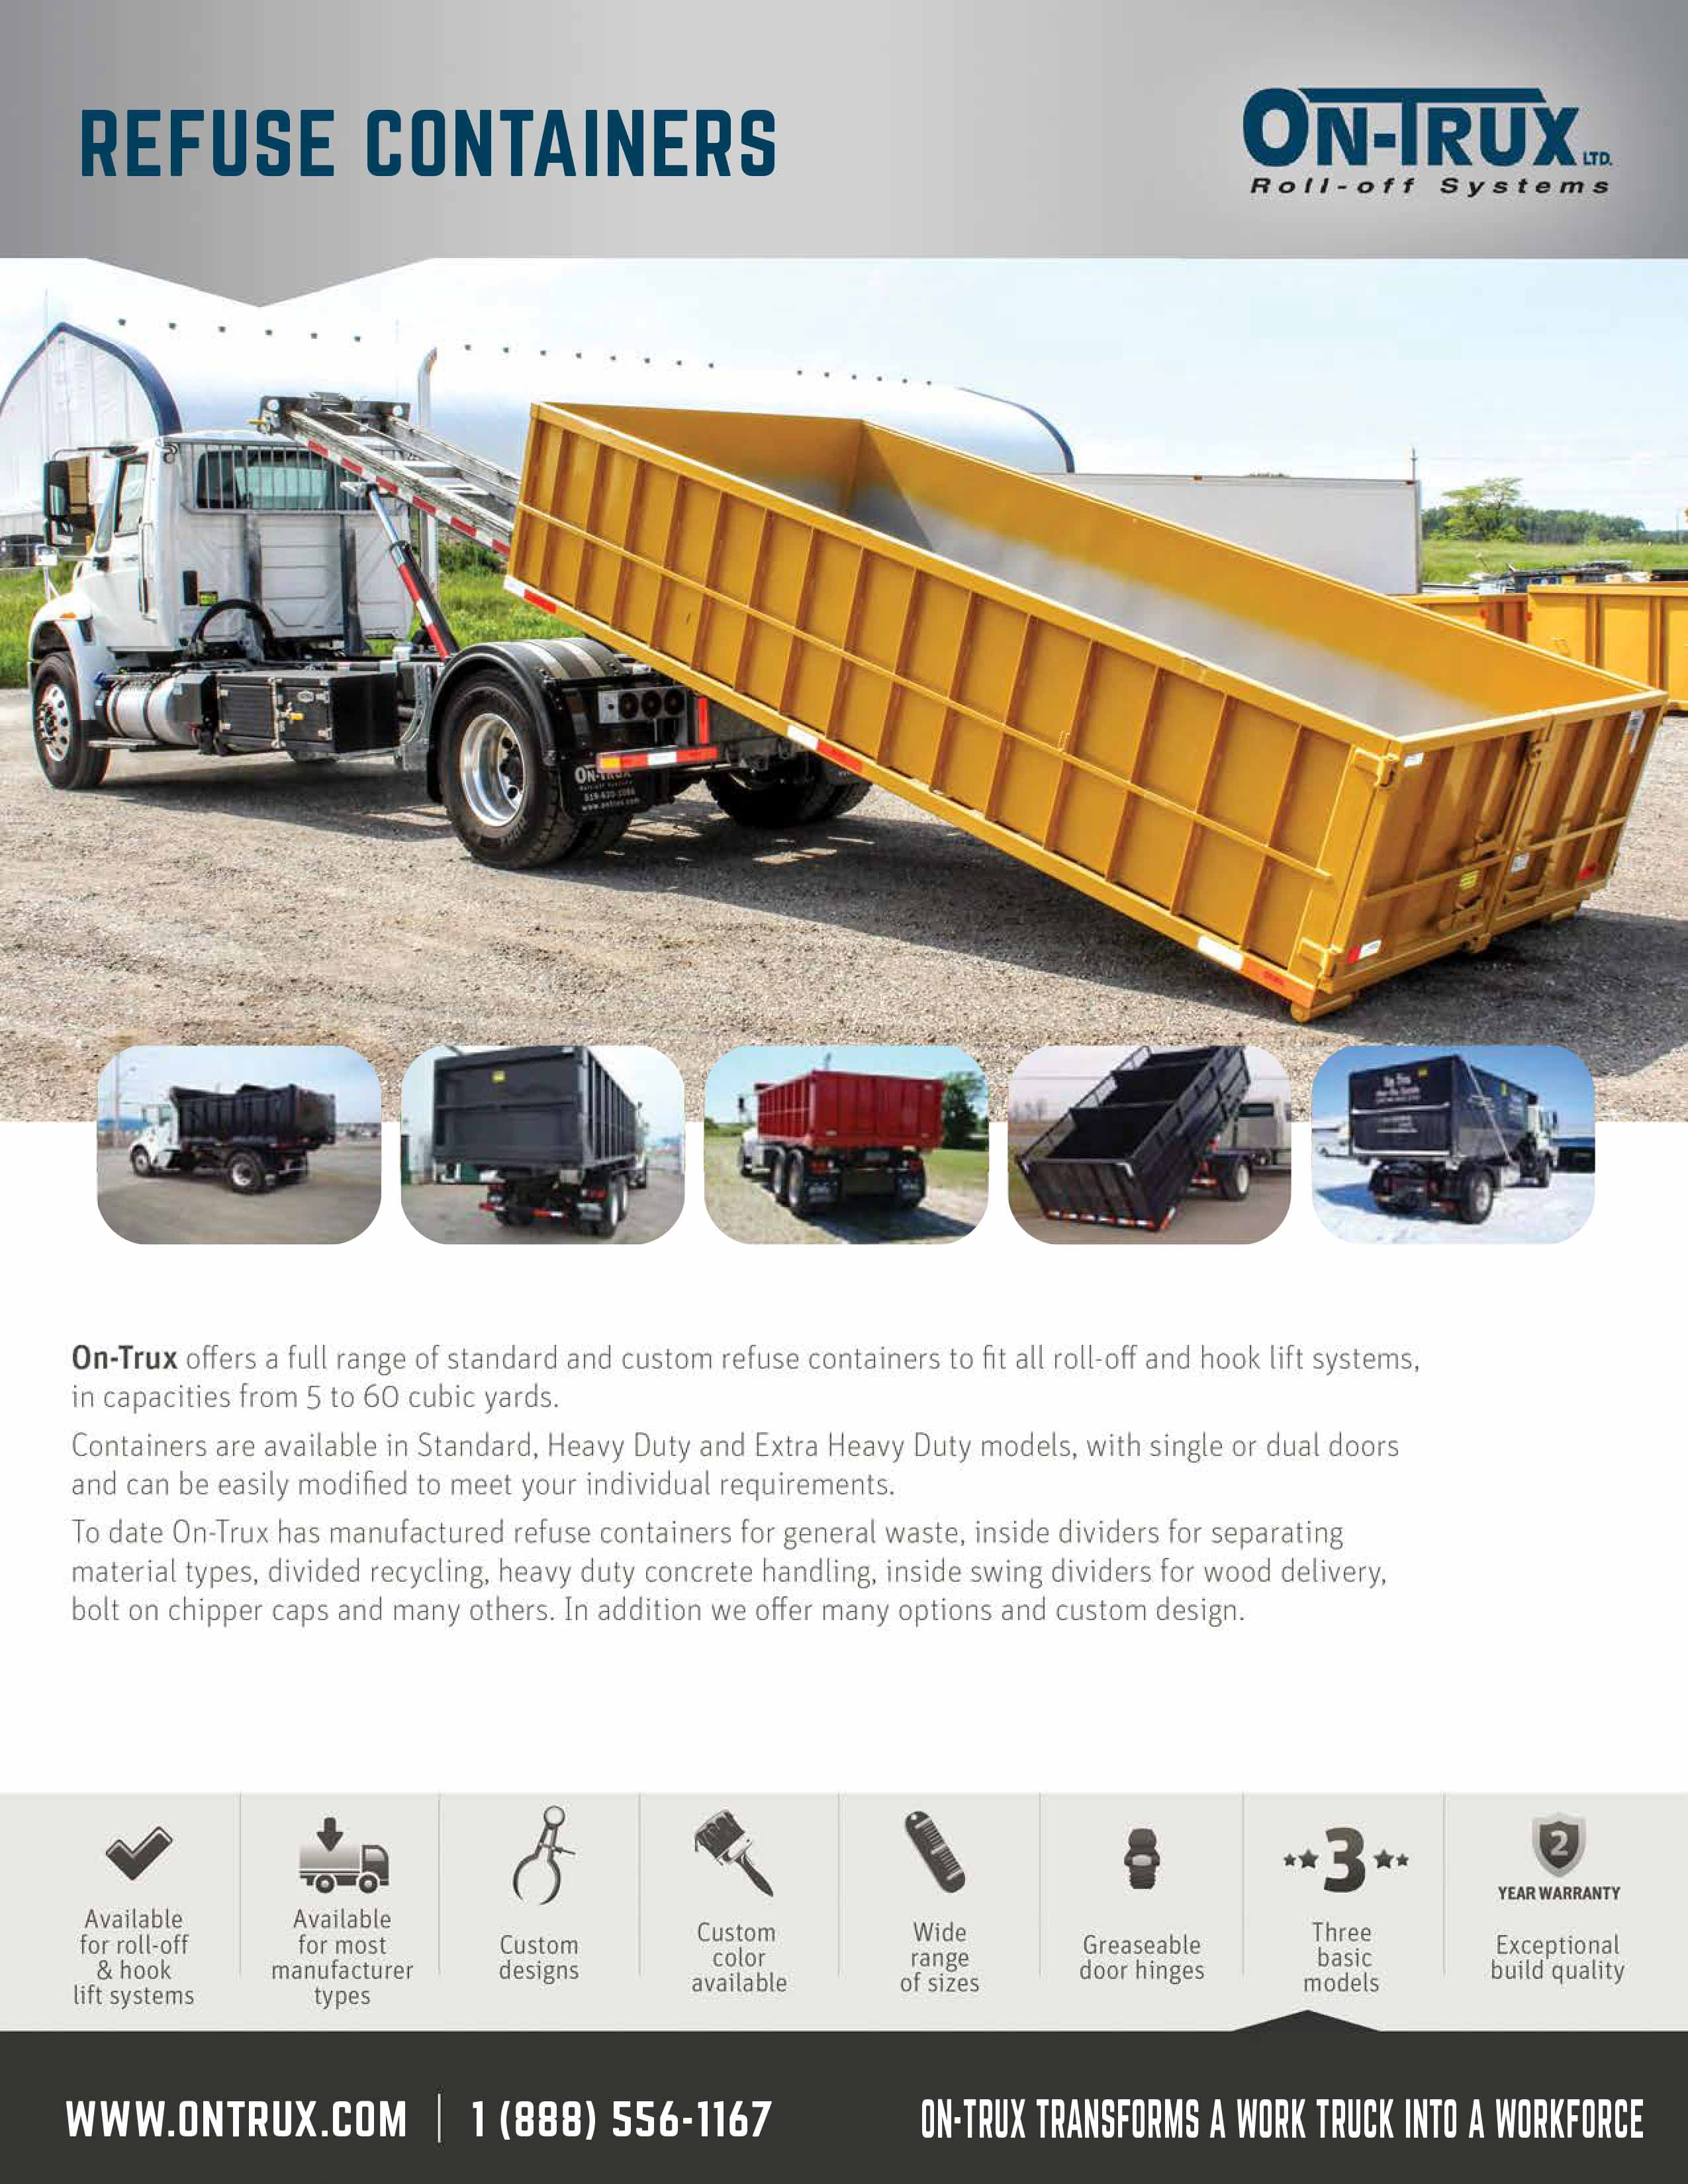 REFUSE CONTAINERS: Available for most roll-off and hook-lift systems